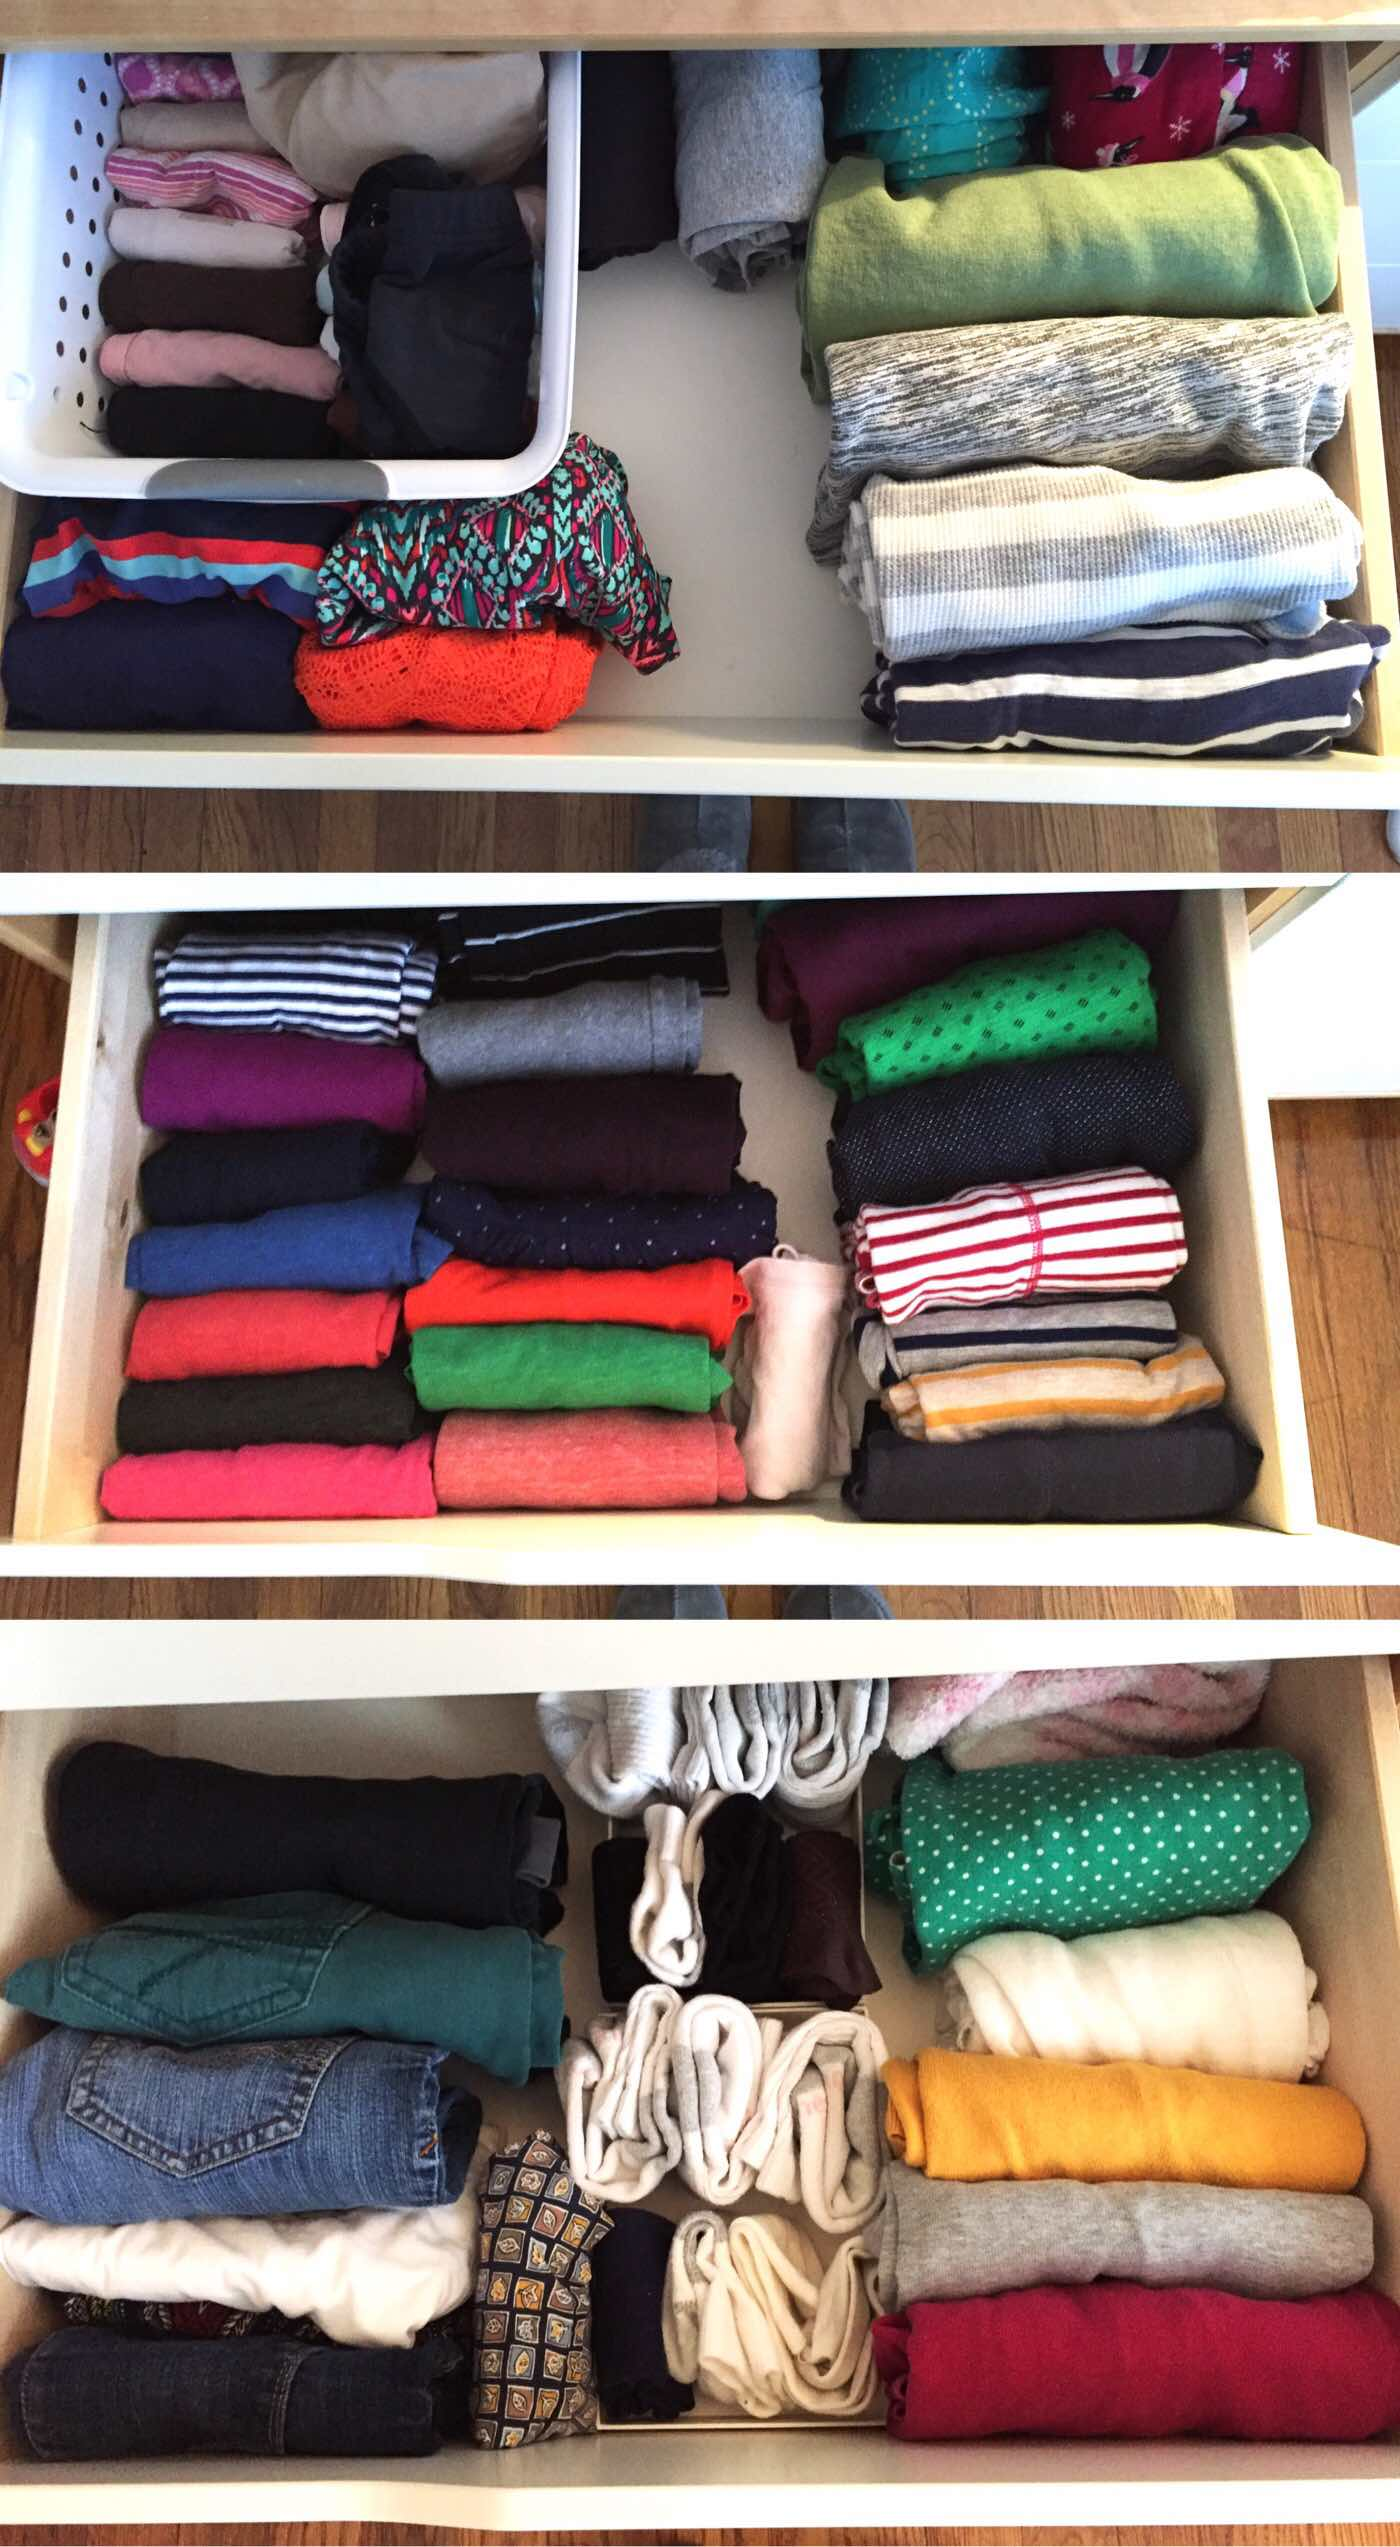 clothes folded the KonMari way